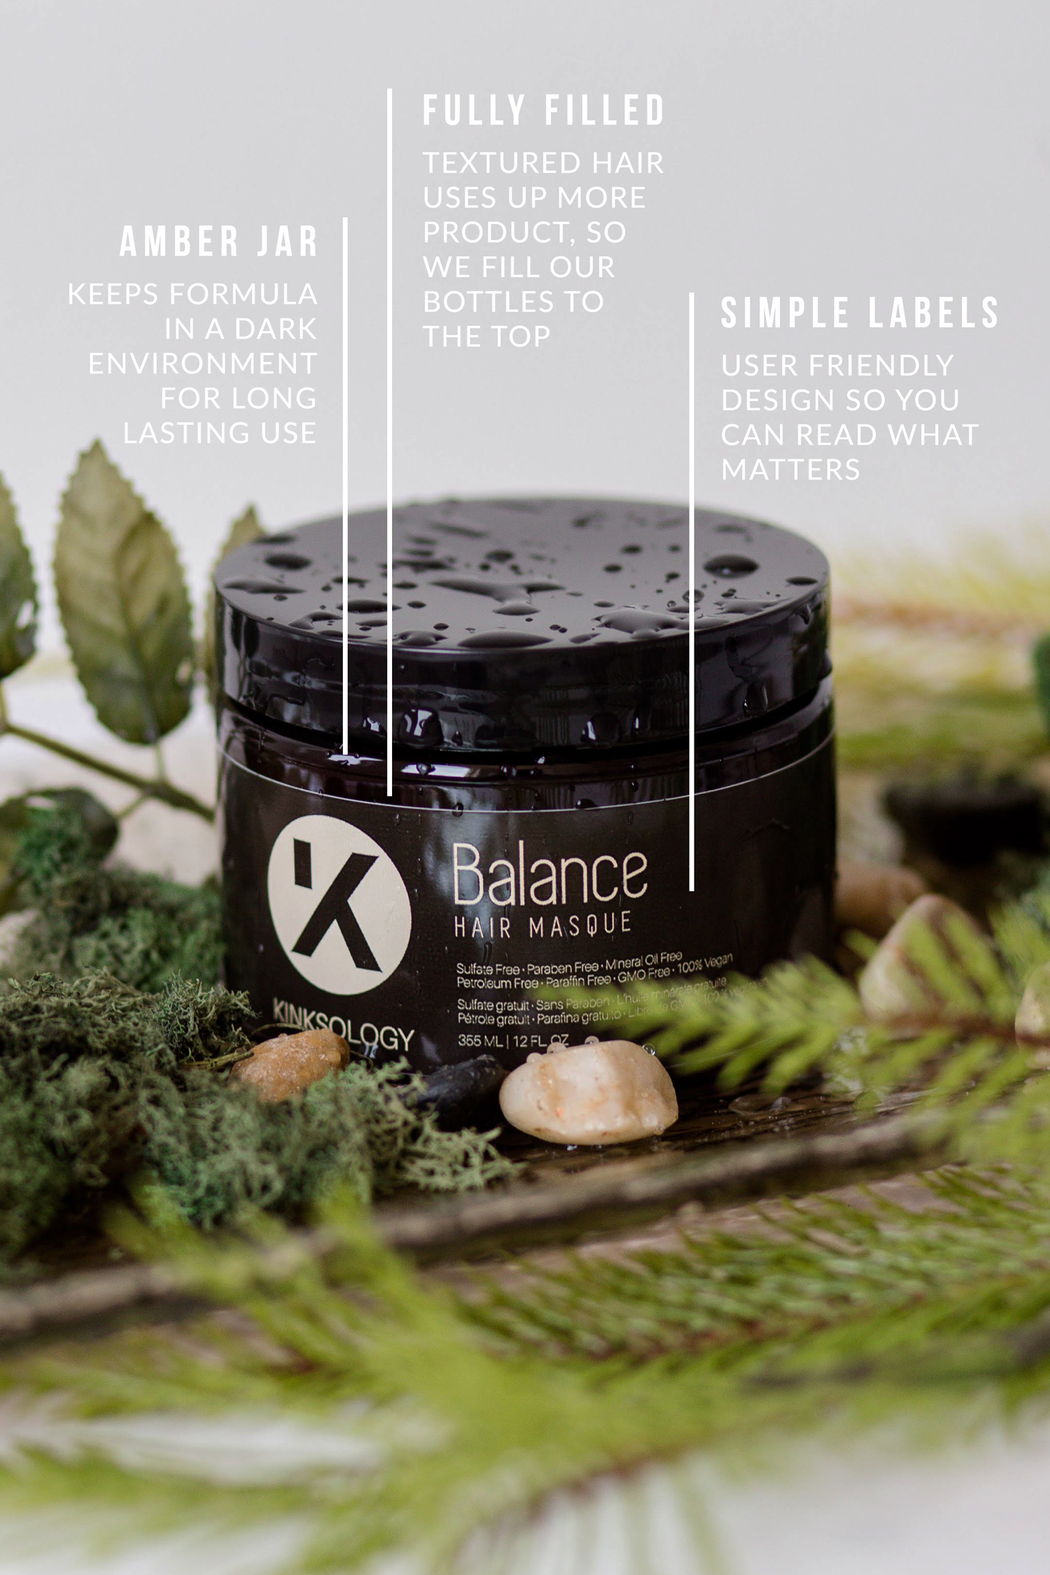 Balance Hair Masque